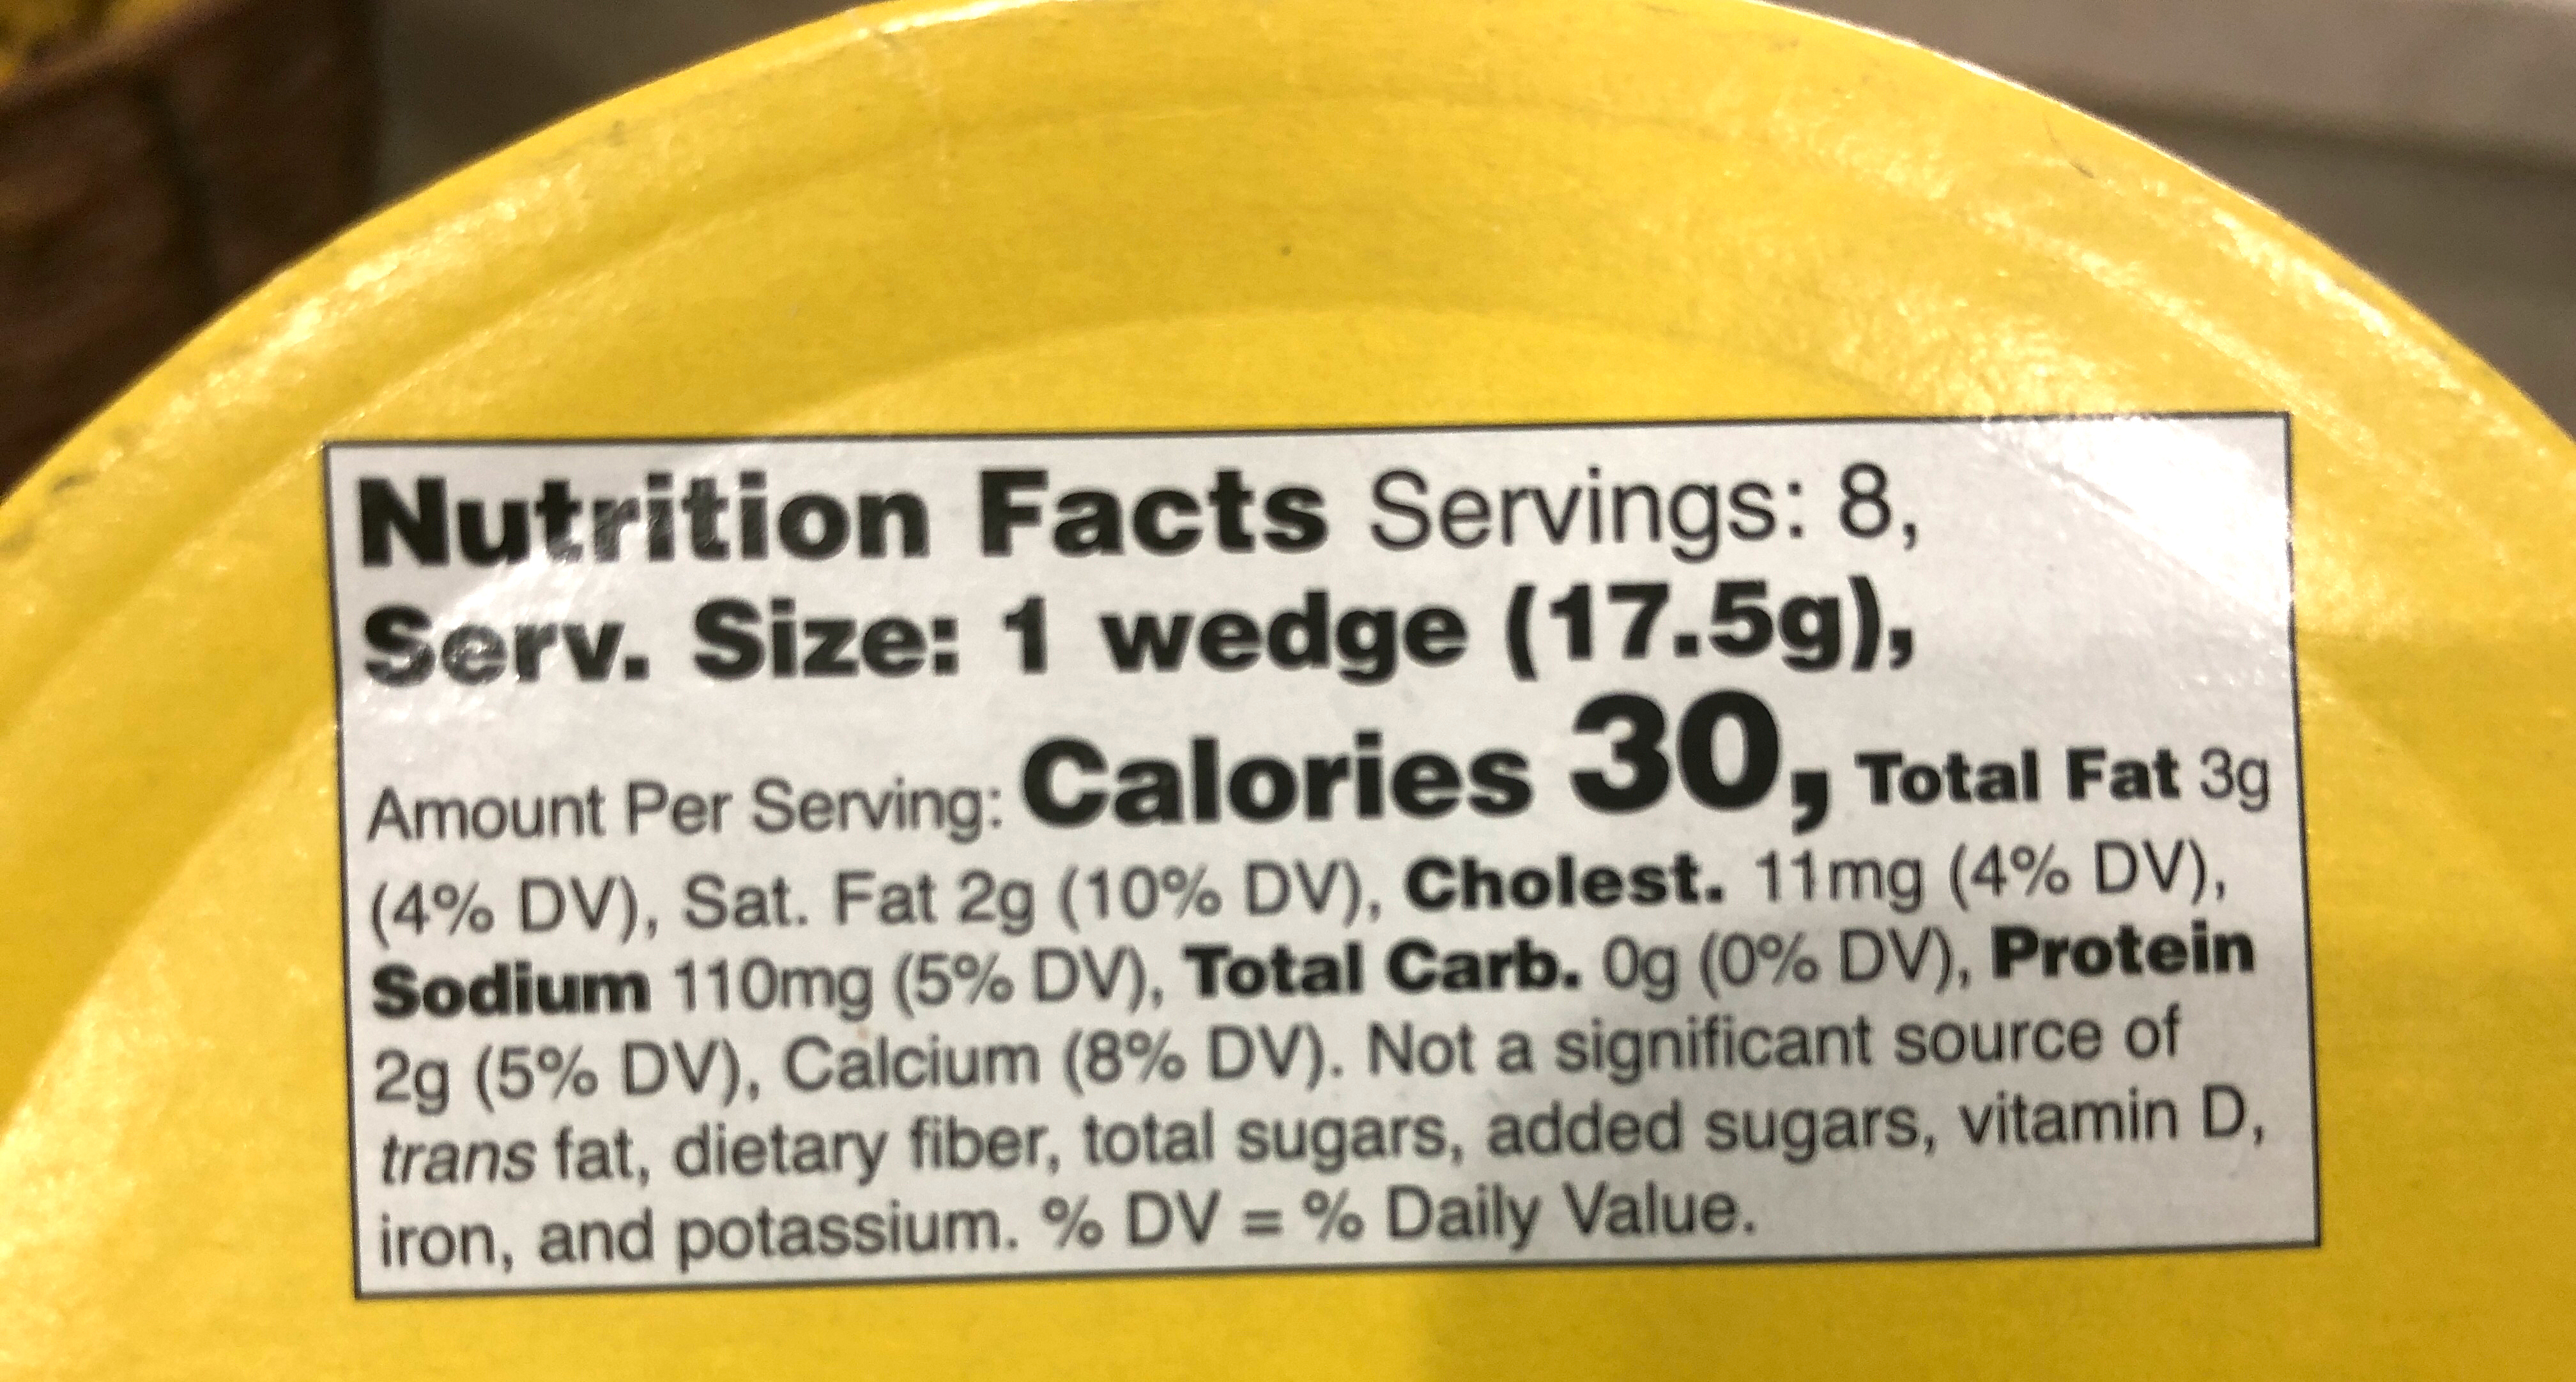 Nutritional label for keto Kerrygold Dubliner cheese wedges